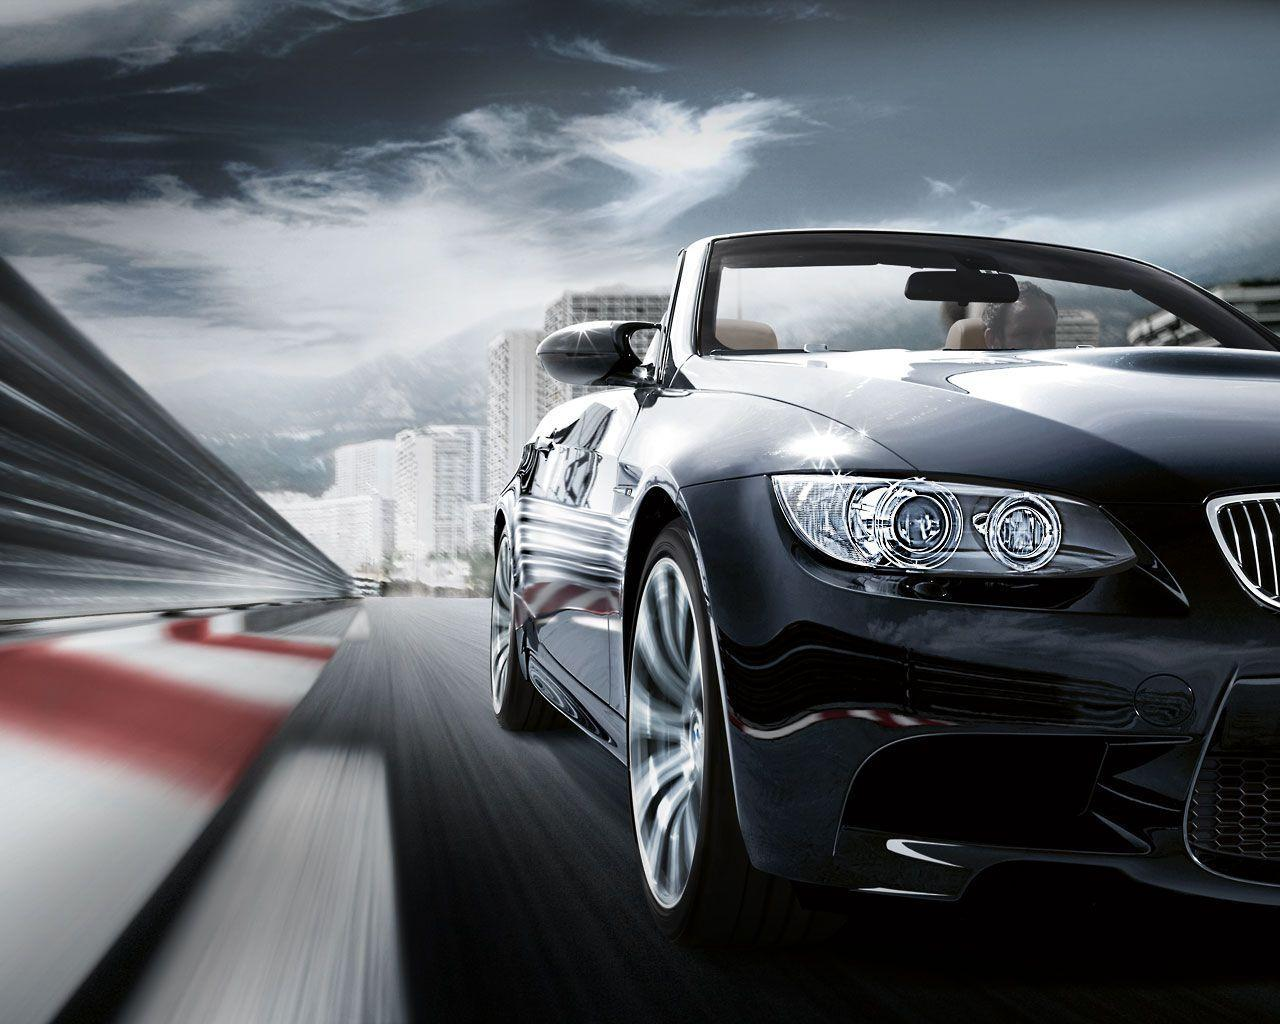 BMW M3 Wallpapers 1280x1024